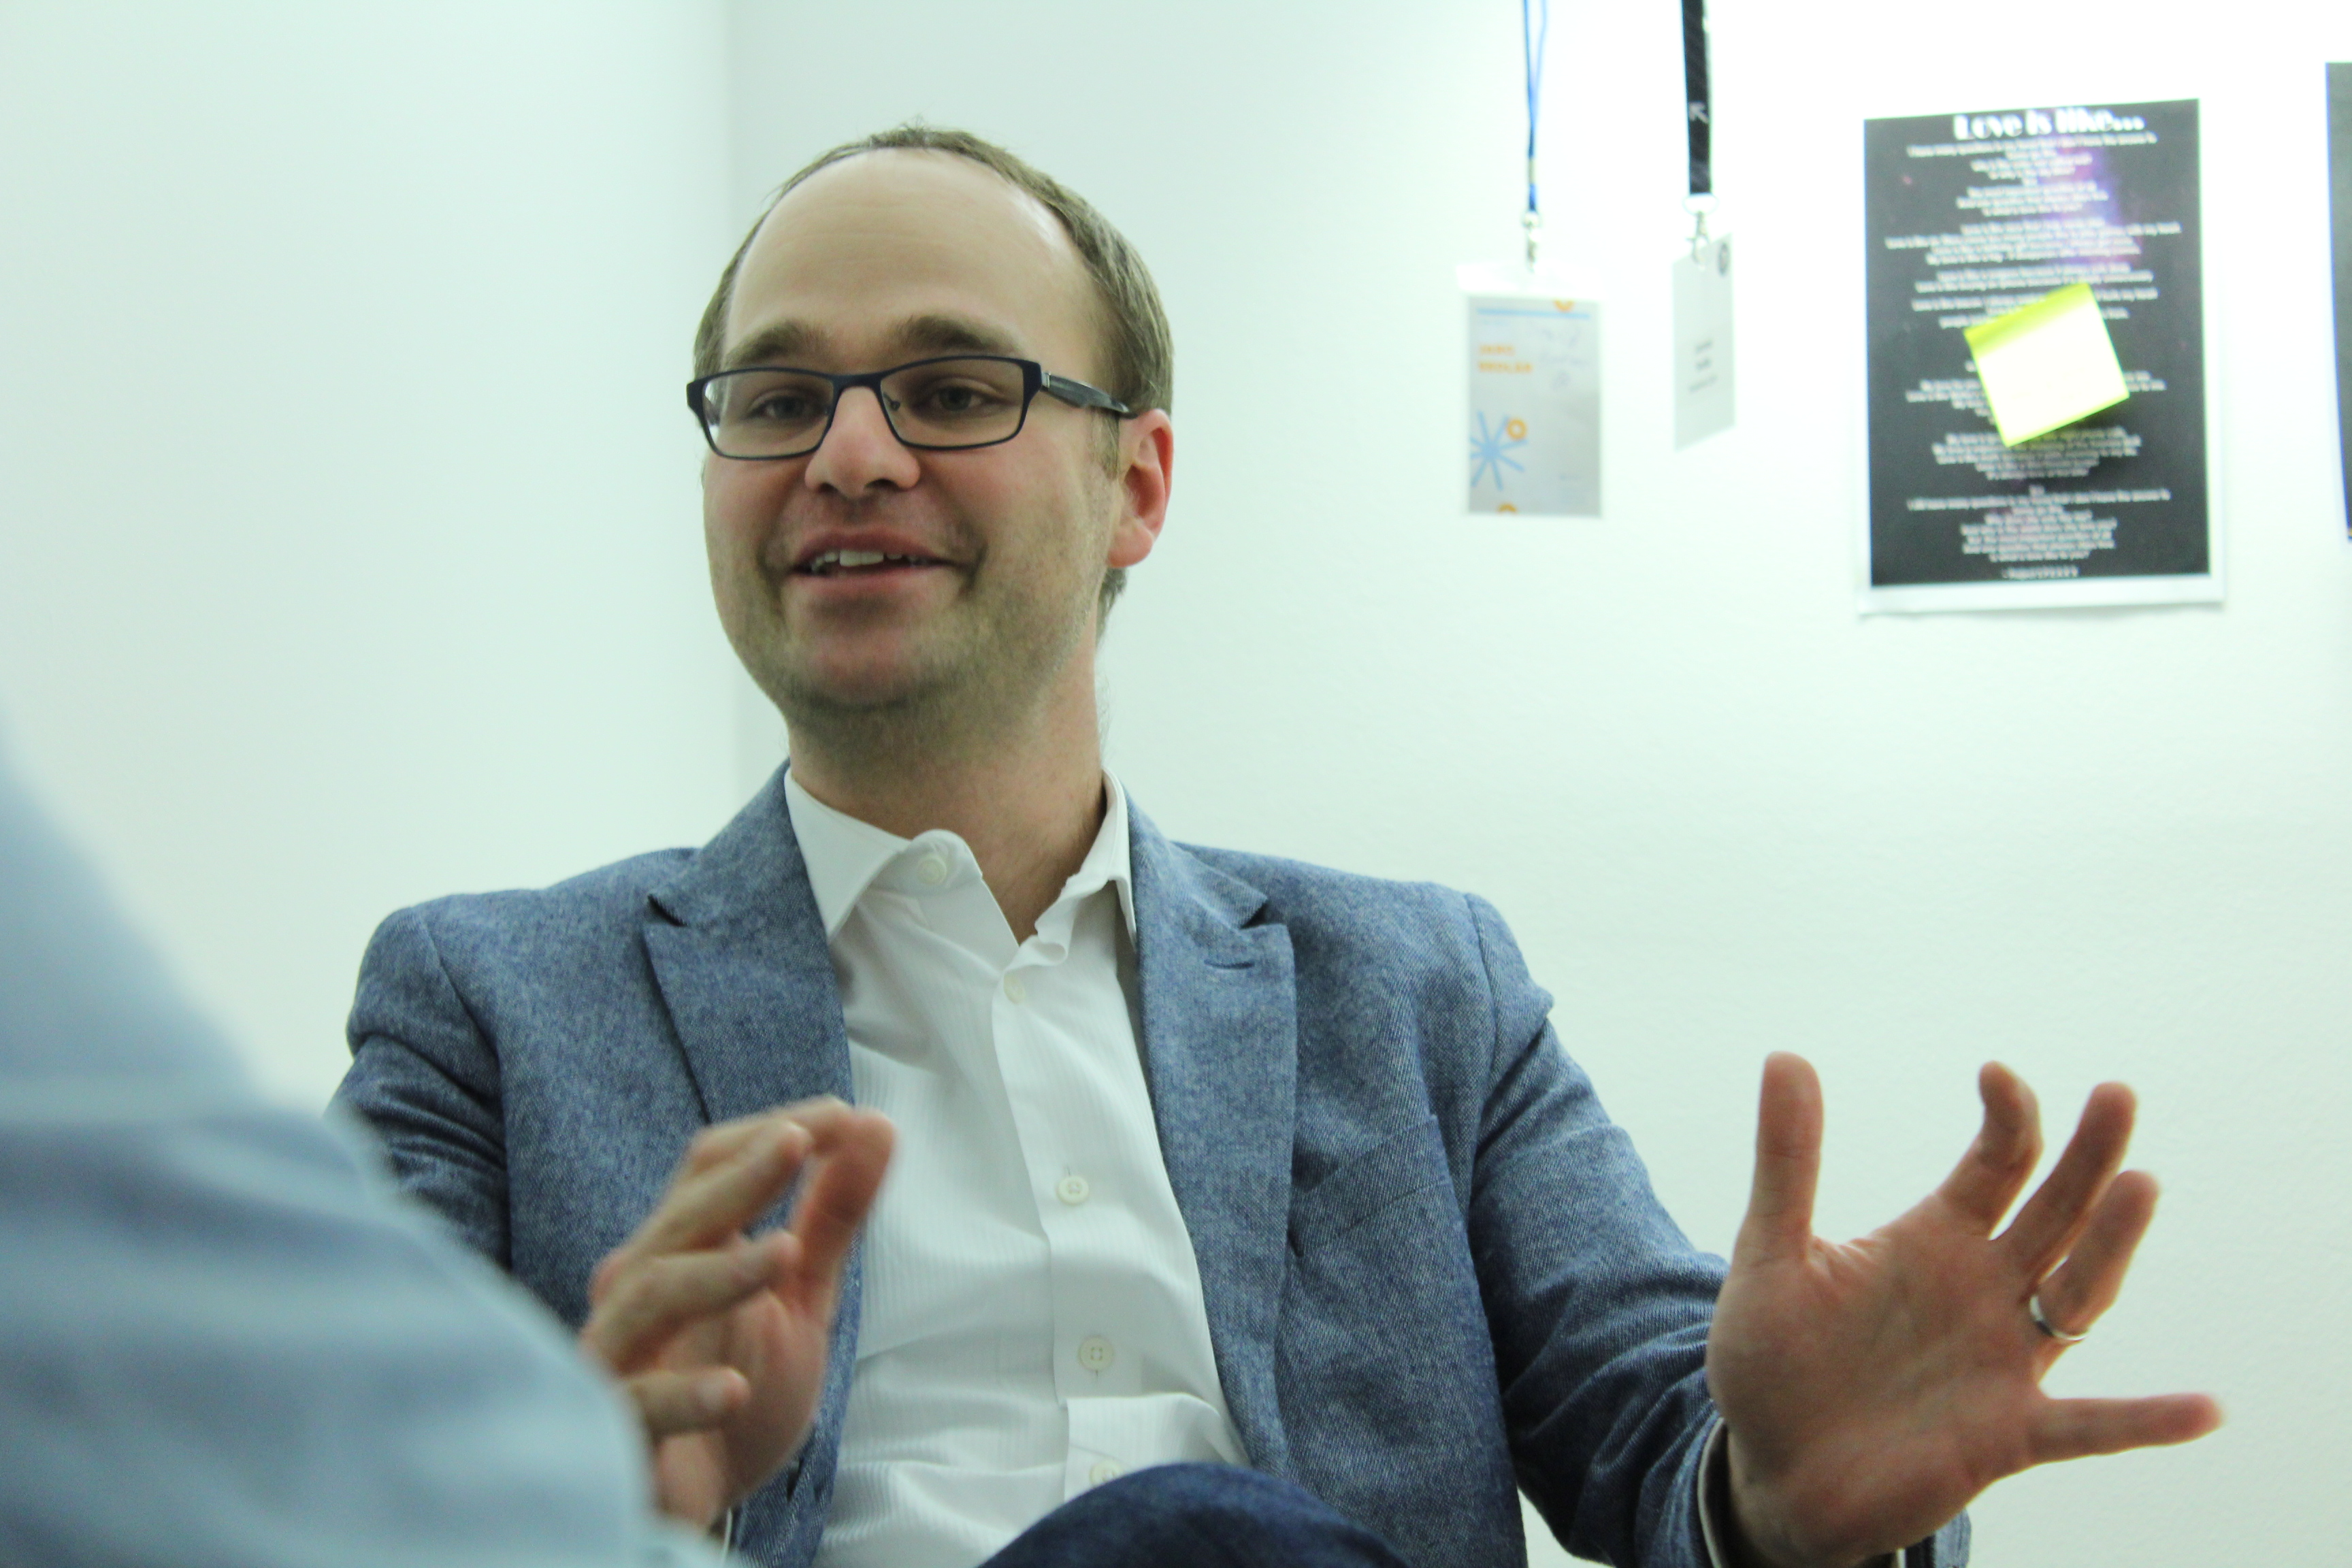 Interview with Jaromír Sedlár